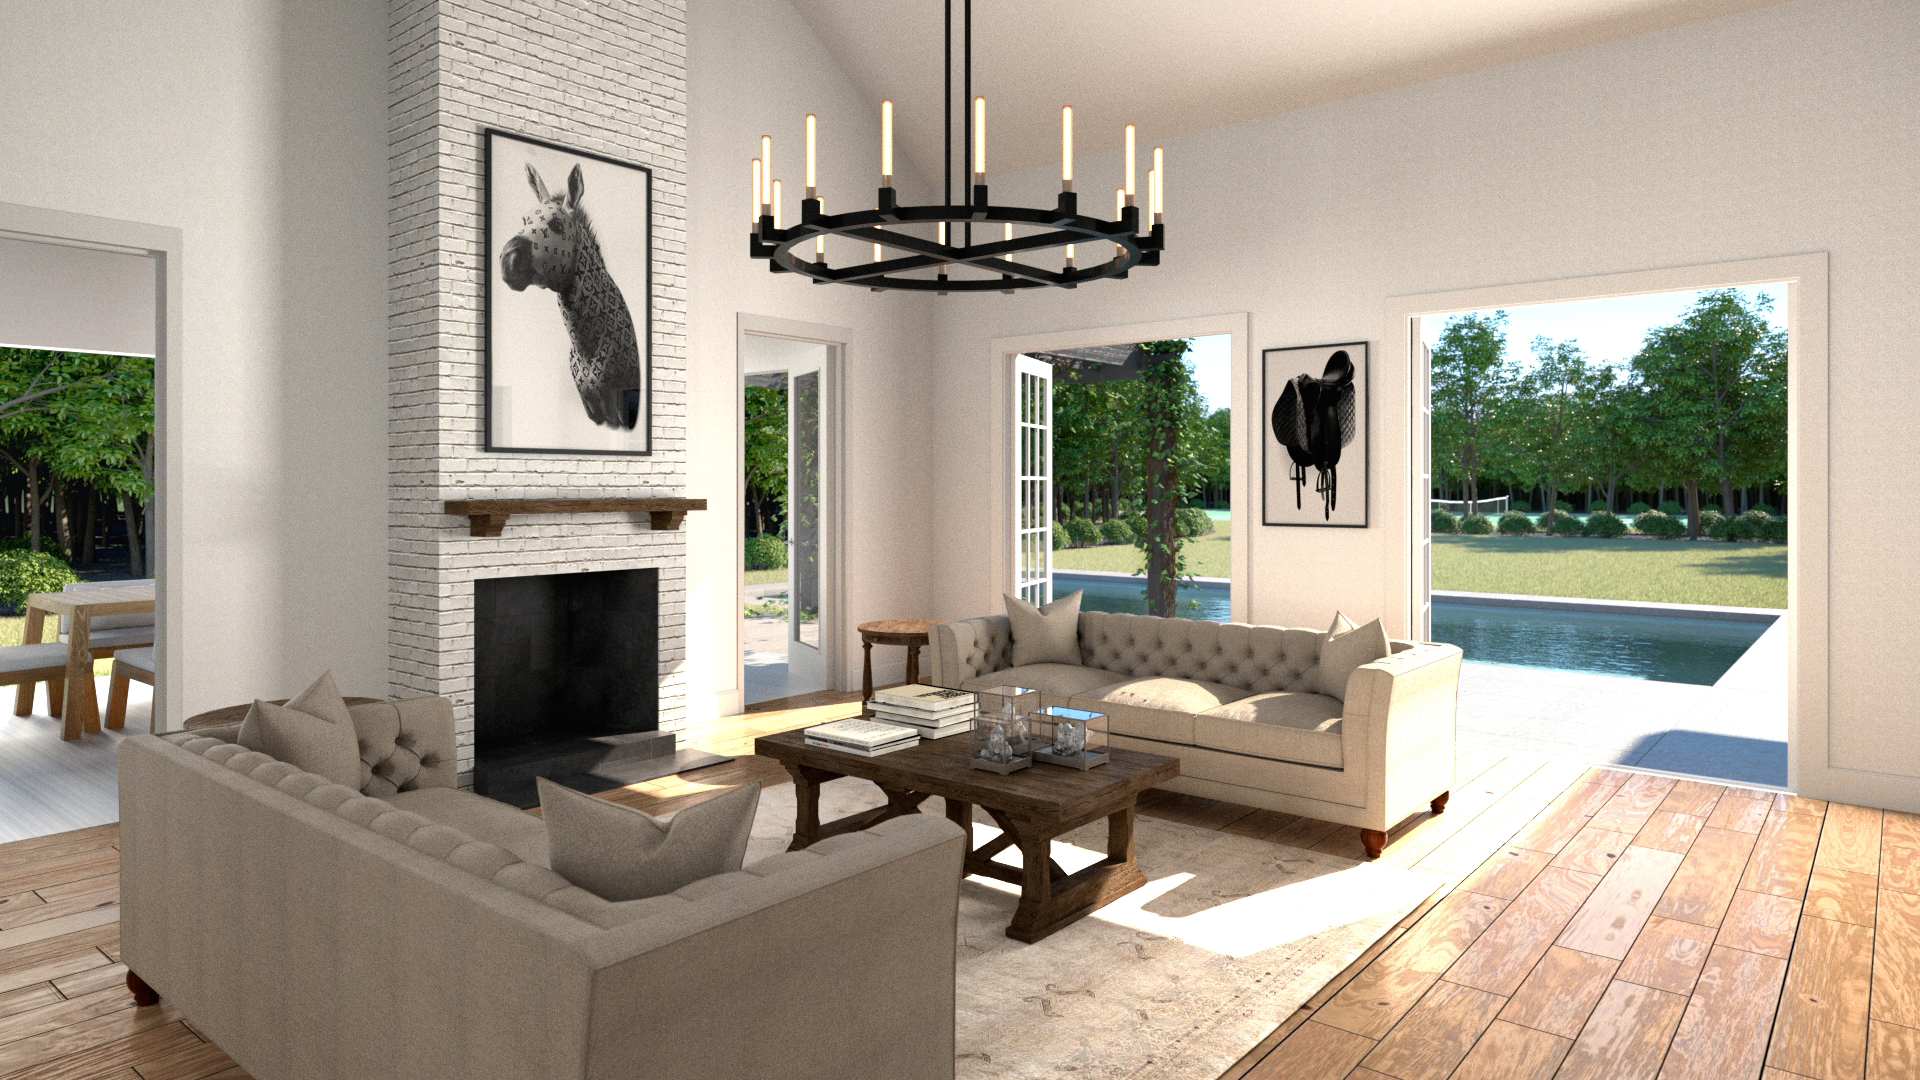 Rendering of a family room